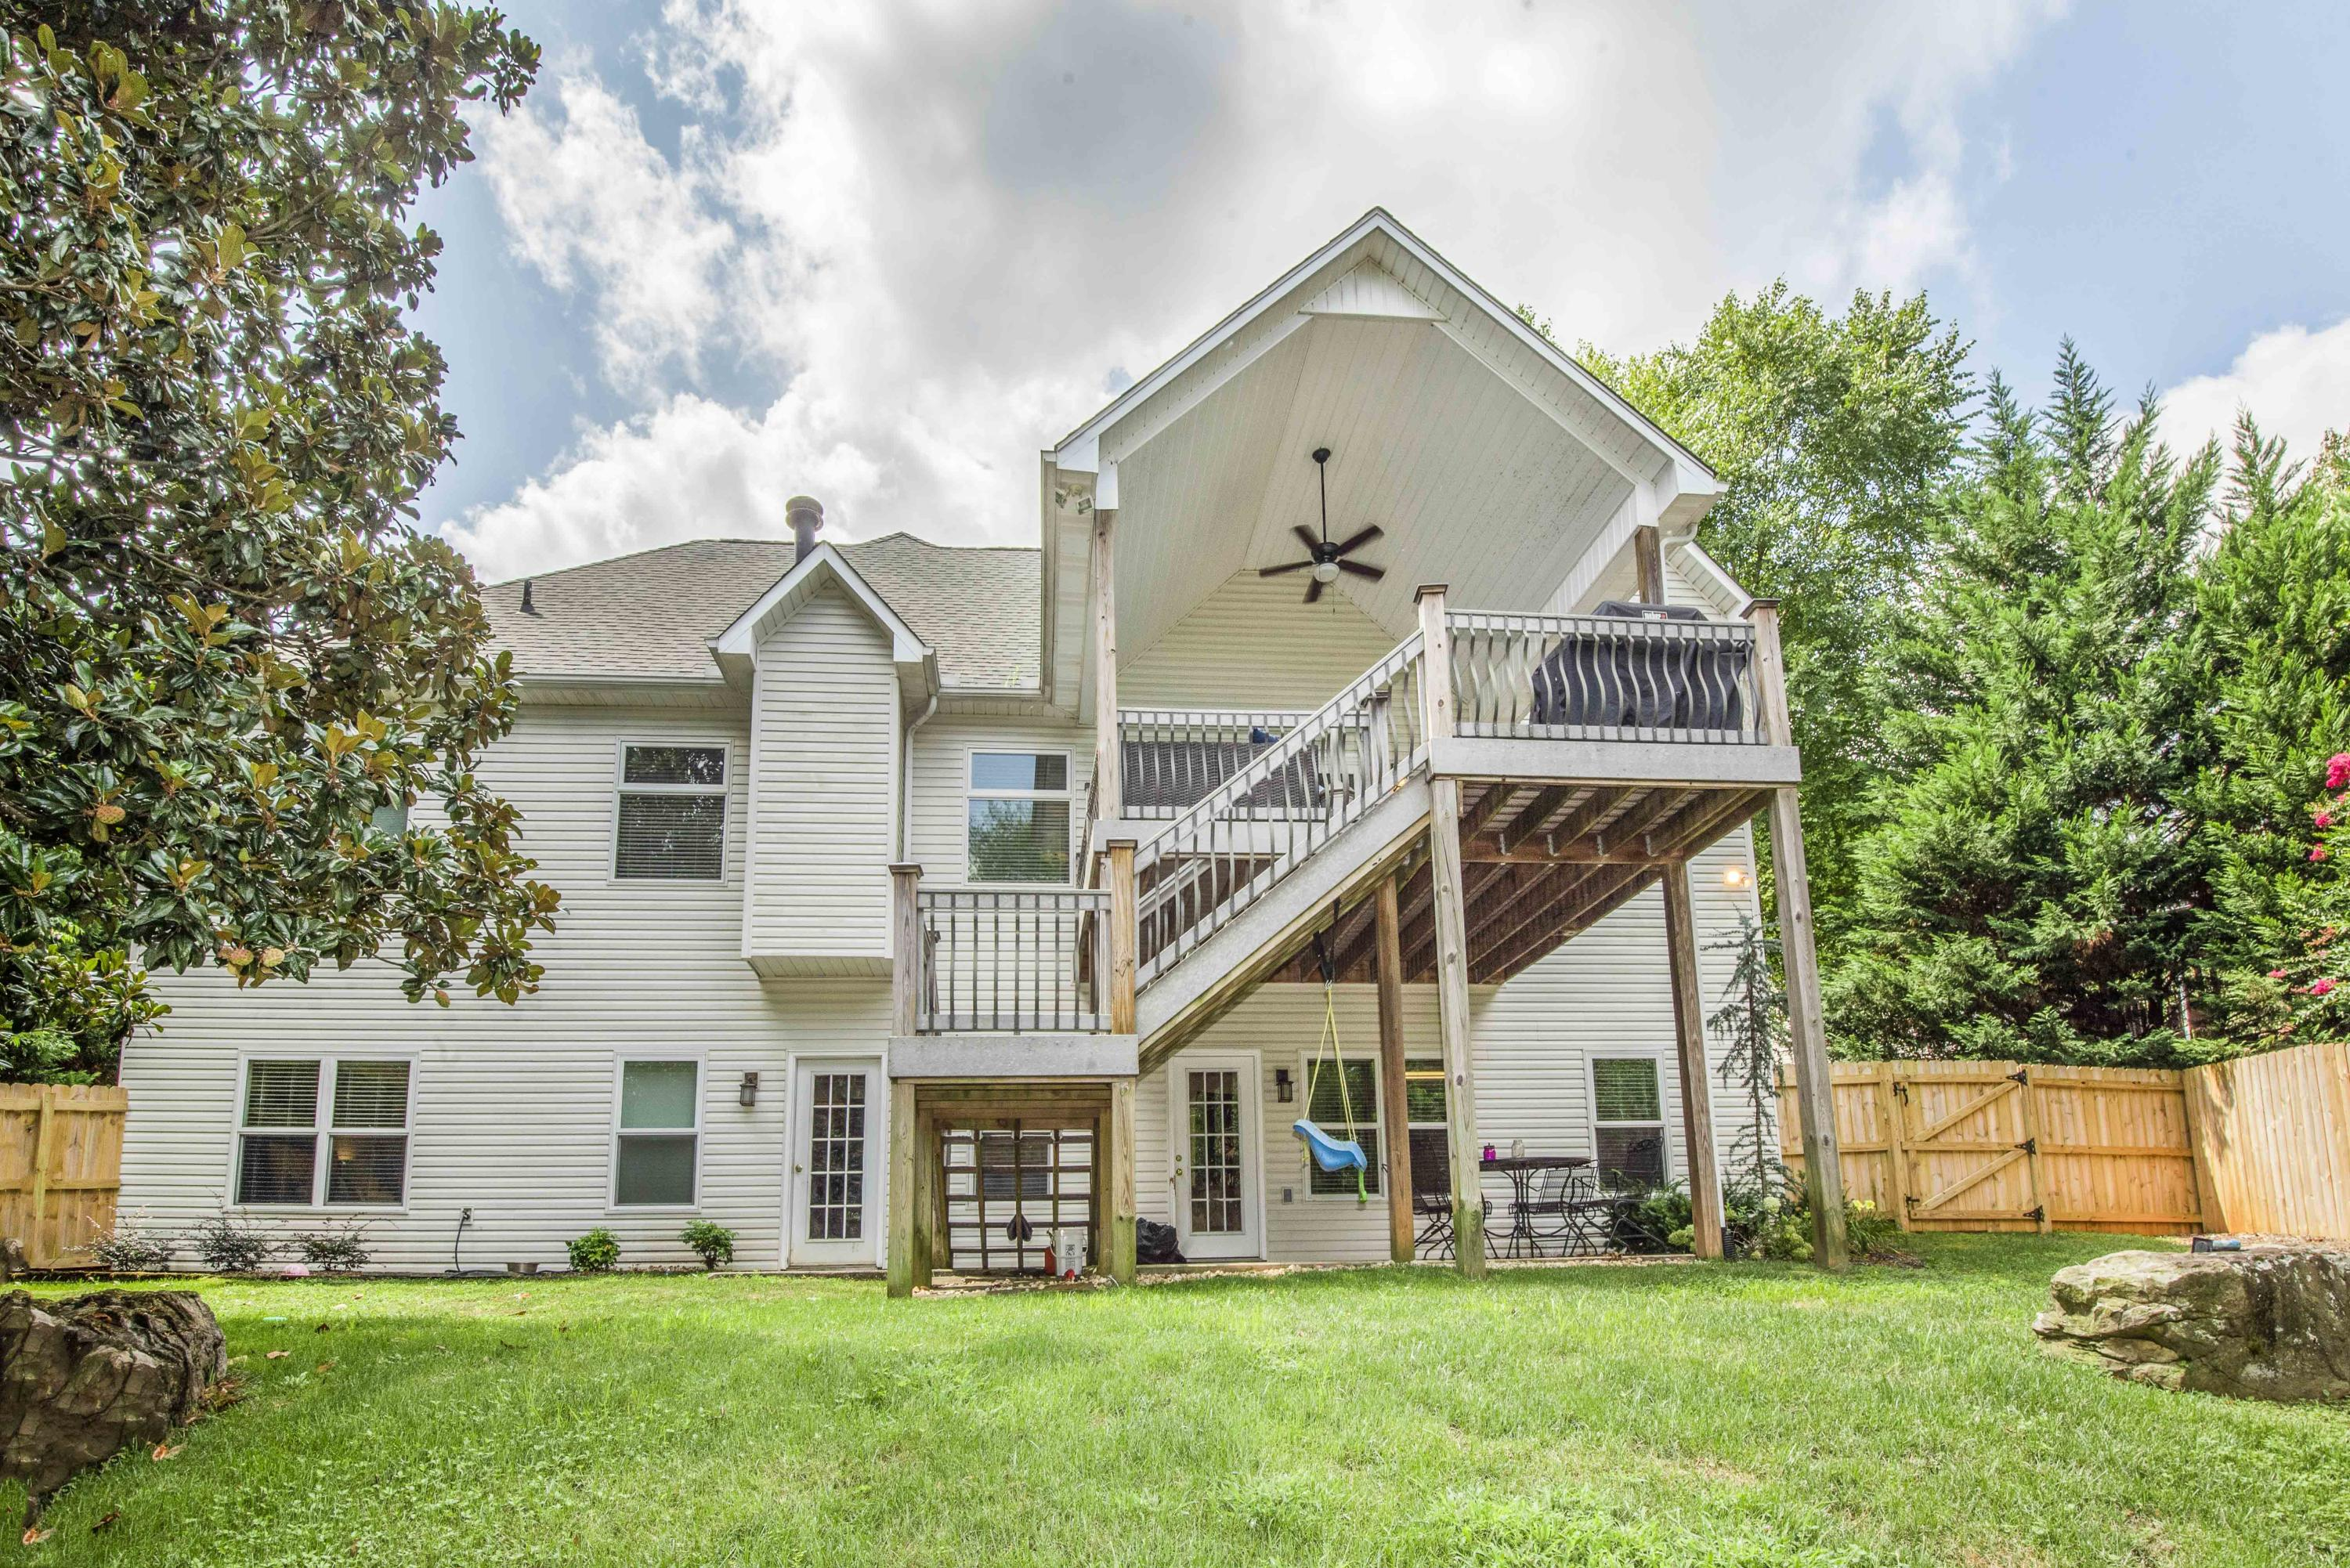 13101 Naylor Ridge Lane, Knoxville, Tennessee 37922, 4 Bedrooms Bedrooms, ,3 BathroomsBathrooms,Single Family,For Sale,Naylor Ridge,1090861